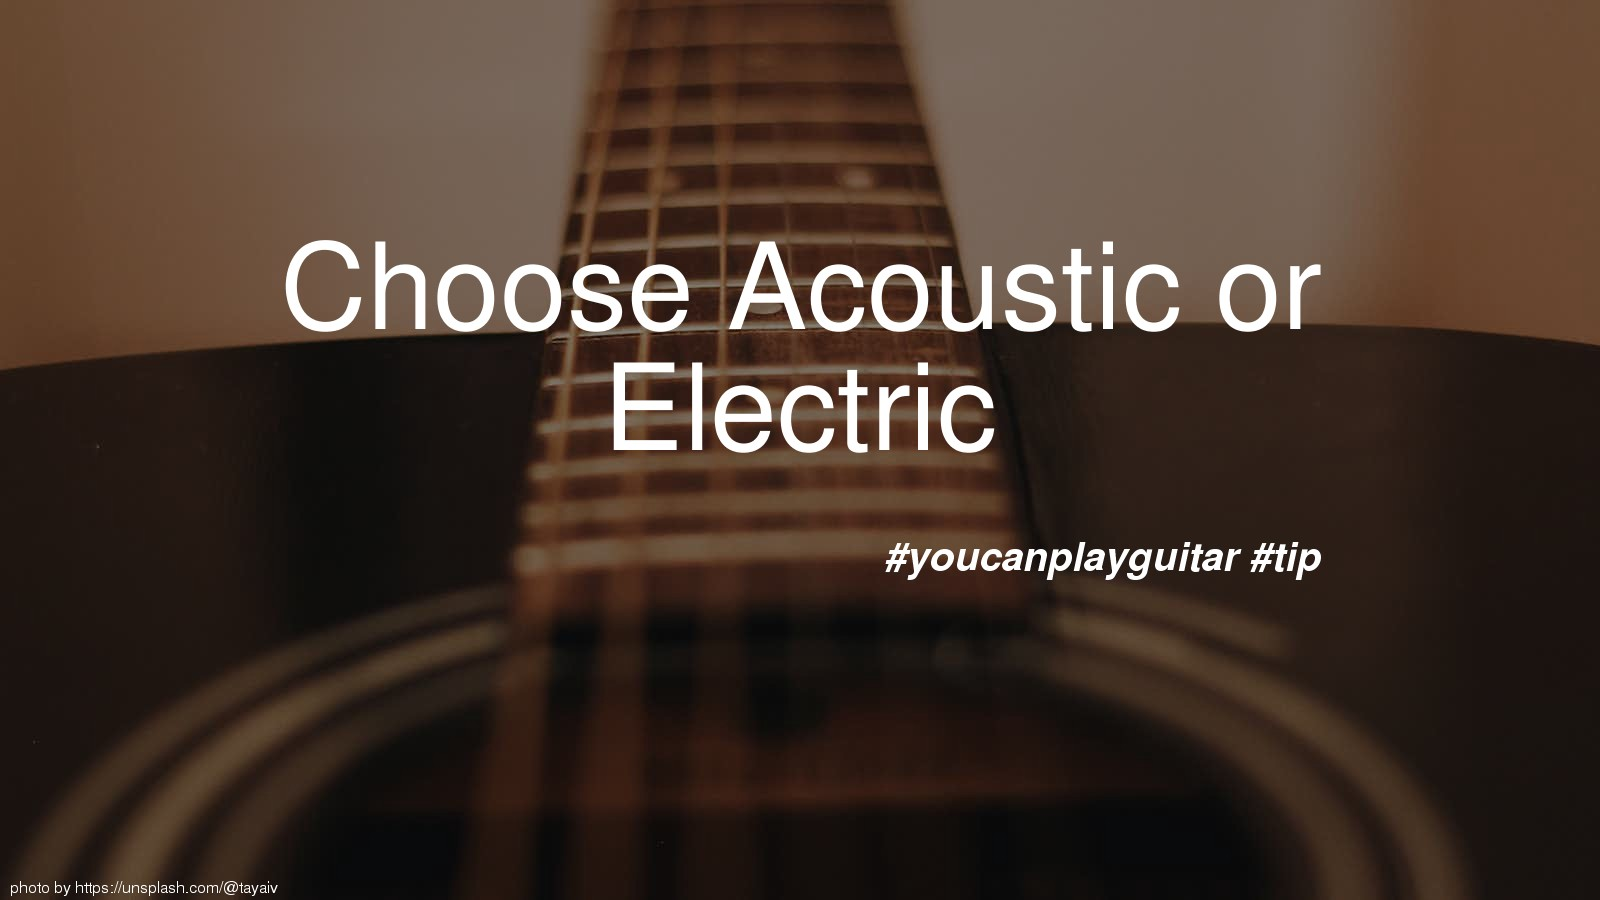 Choose Acoustic or Electric